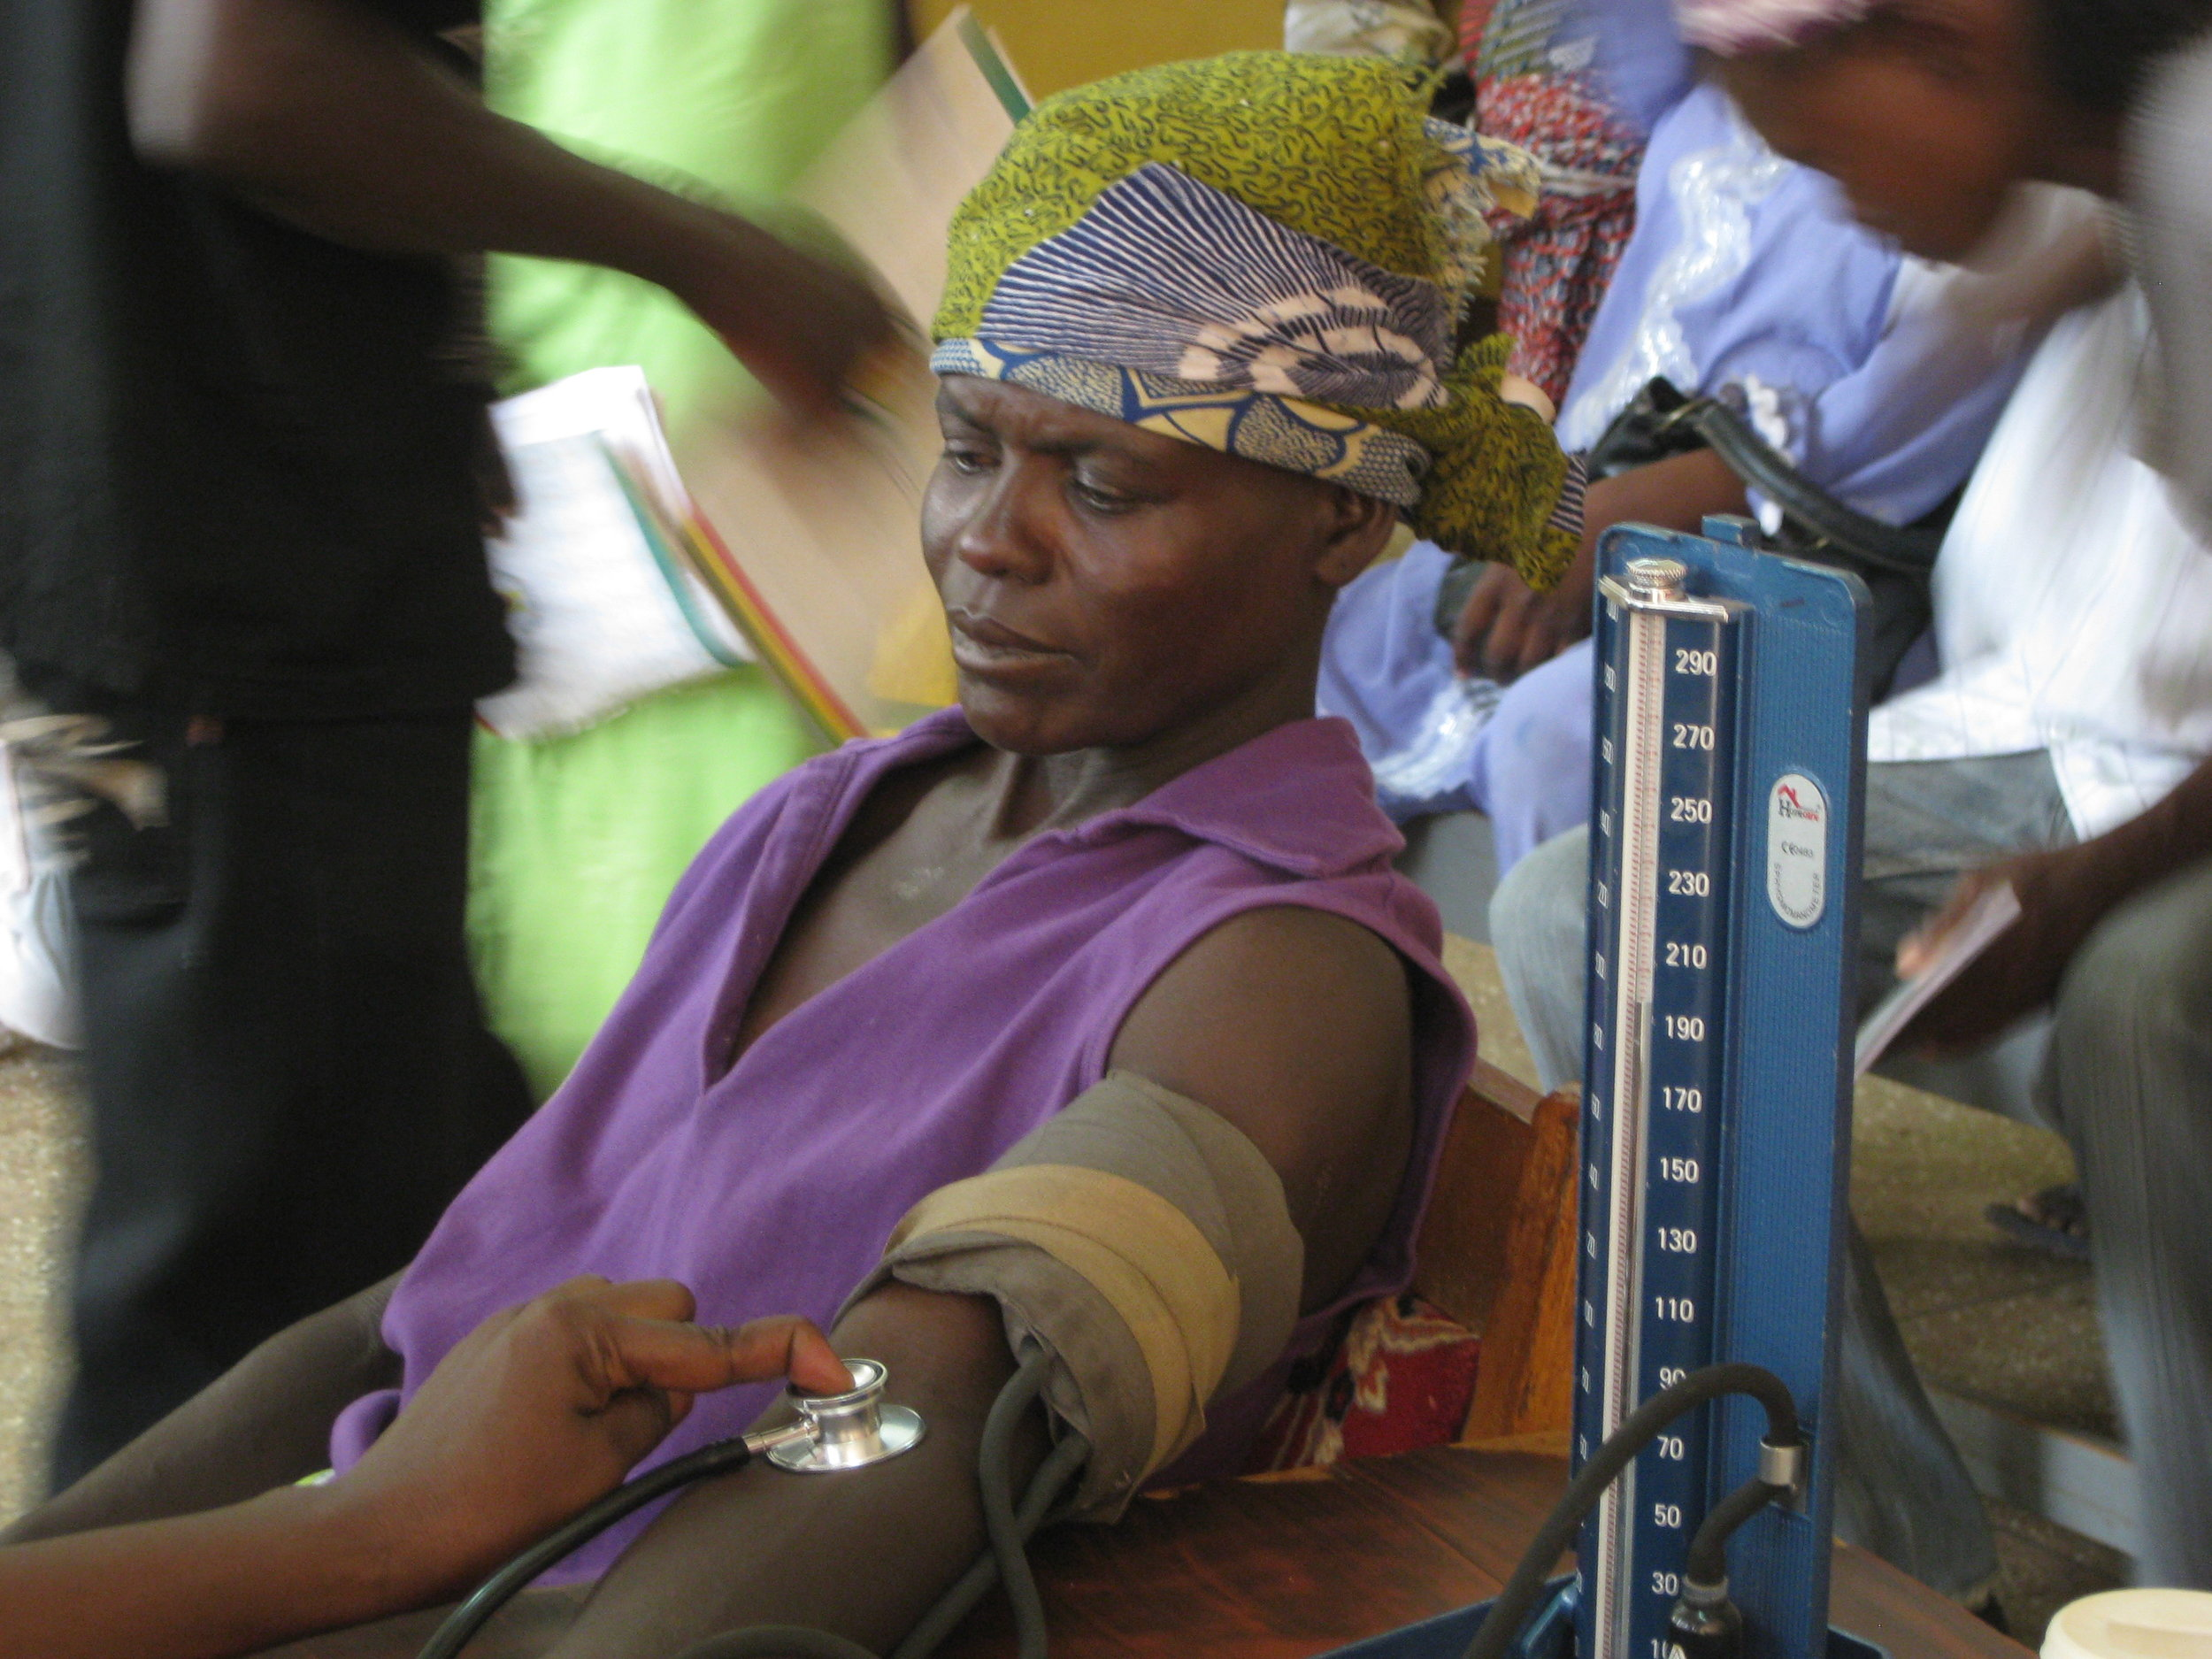 This woman is one of many who would benefit from the establishment of the first cervical cancer and screening treatment program in the Upper West Region of Ghana